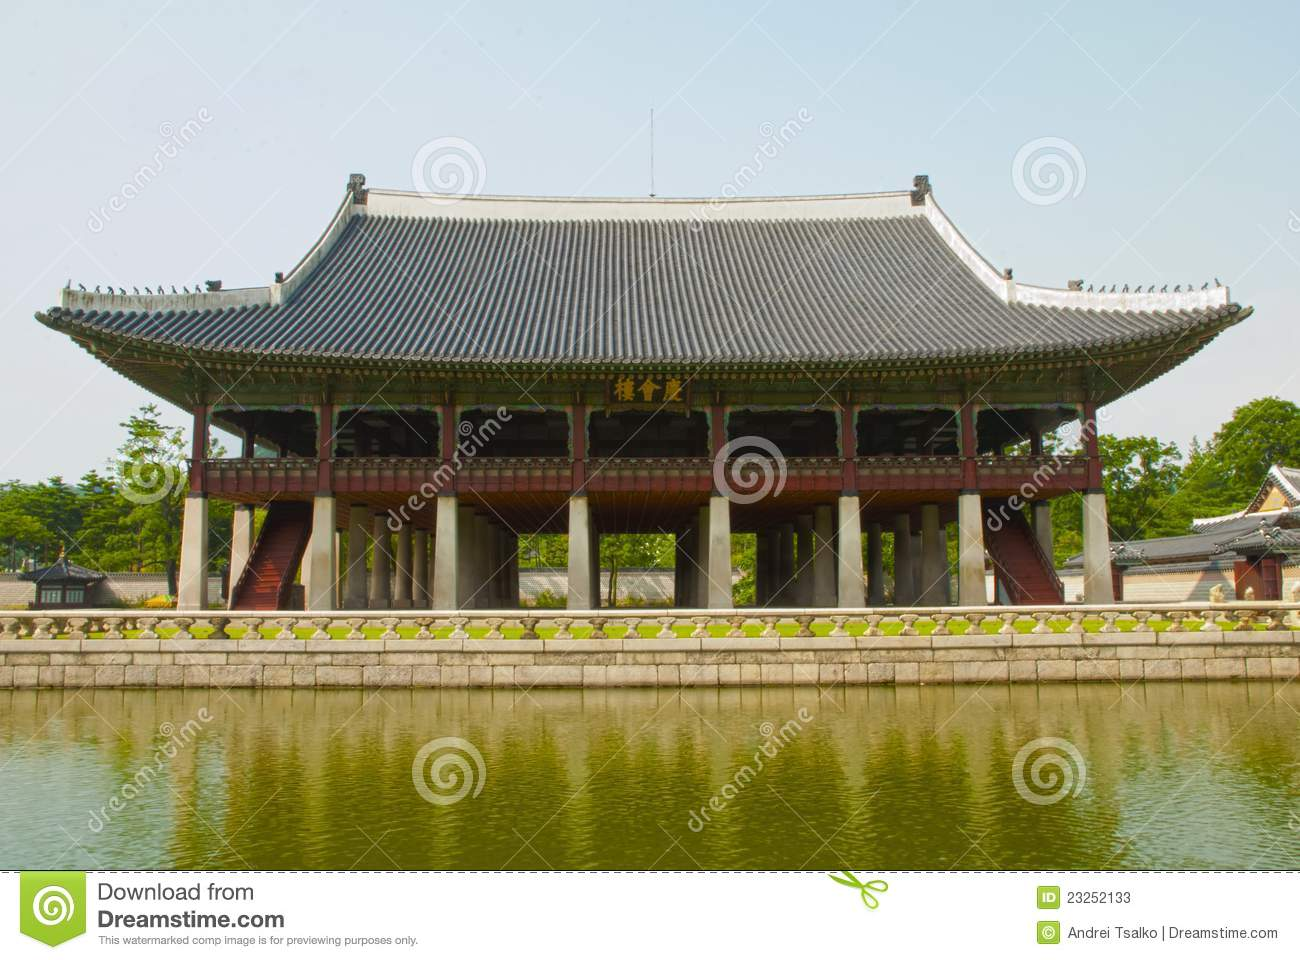 house design in south korea with Stock Photos Korean Old Buildings Outside Inside Image23252133 on Gallery likewise Asos Headquarters Morey Smith also Stock Photos Korean Old Buildings Outside Inside Image23252133 further Rainbow 6 operator idea from yellowthekid and art furthermore Stock Illustration Gyeongbokgung Symbol Seoul Korea Retro Rubber St  Image58344517.